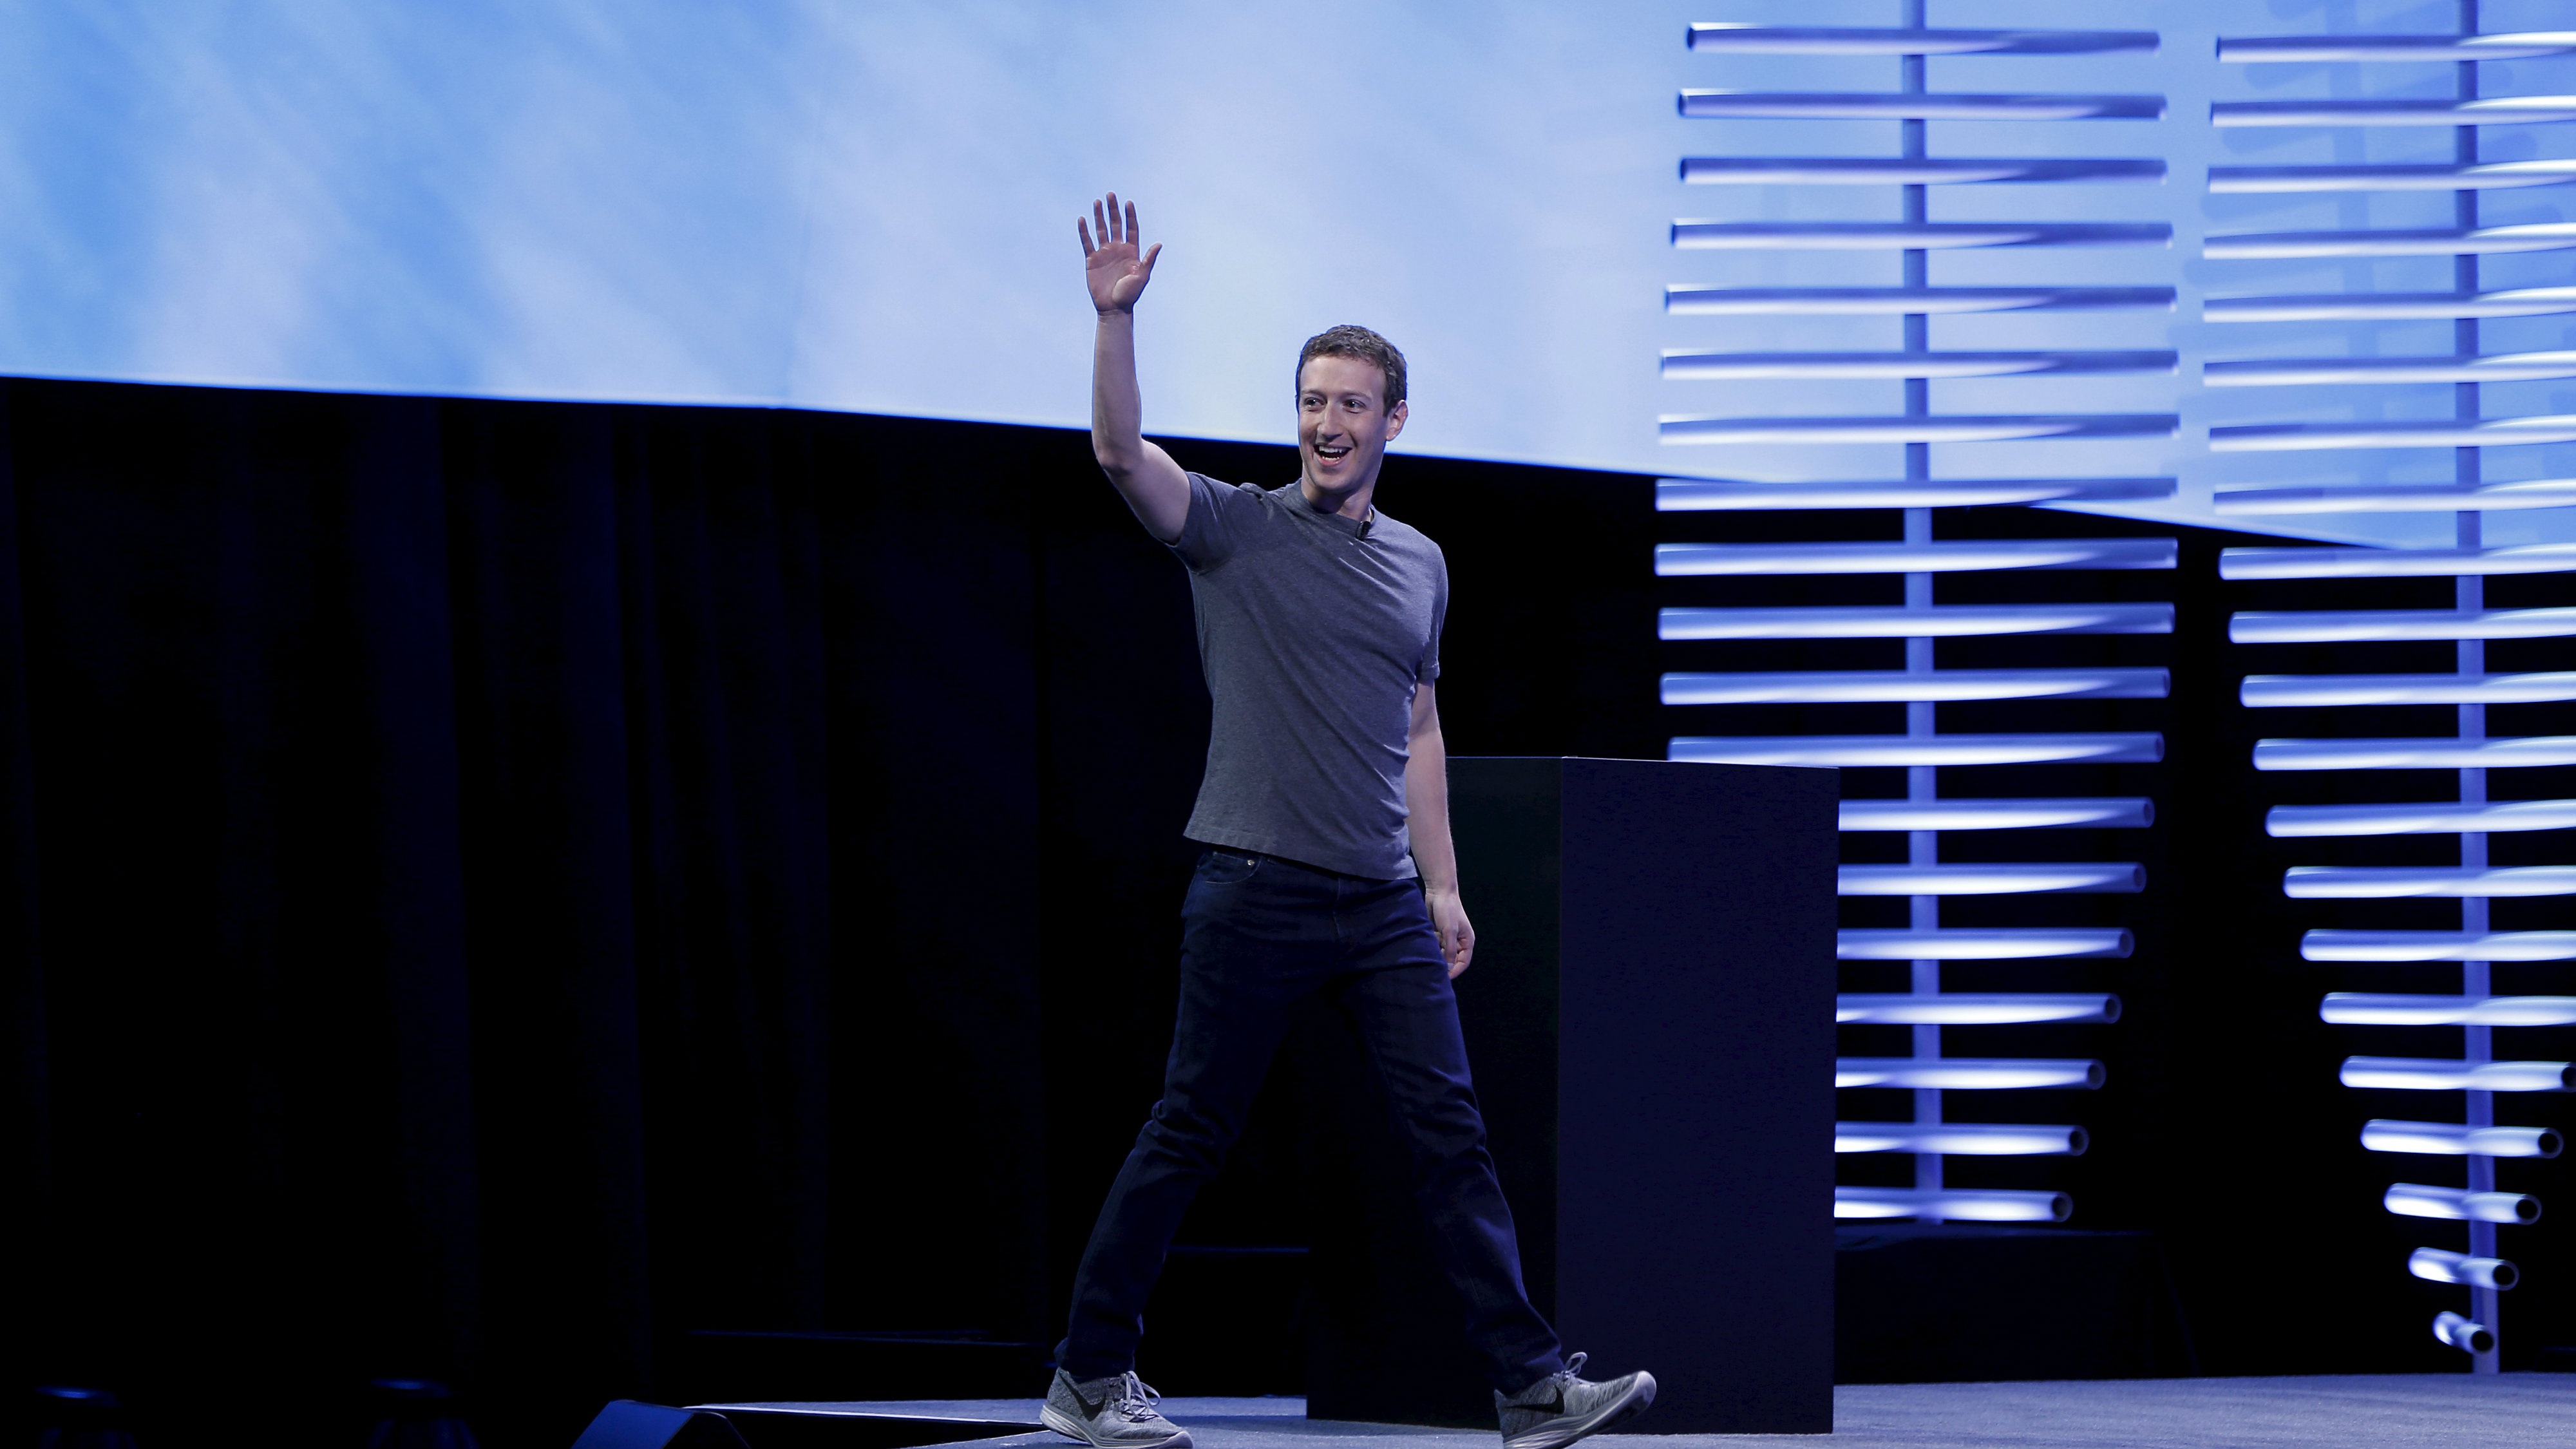 Facebook CEO Mark Zuckerberg waves as he arrive for his keynote during the Facebook F8 conference in San Francisco, California April 12, 2016.